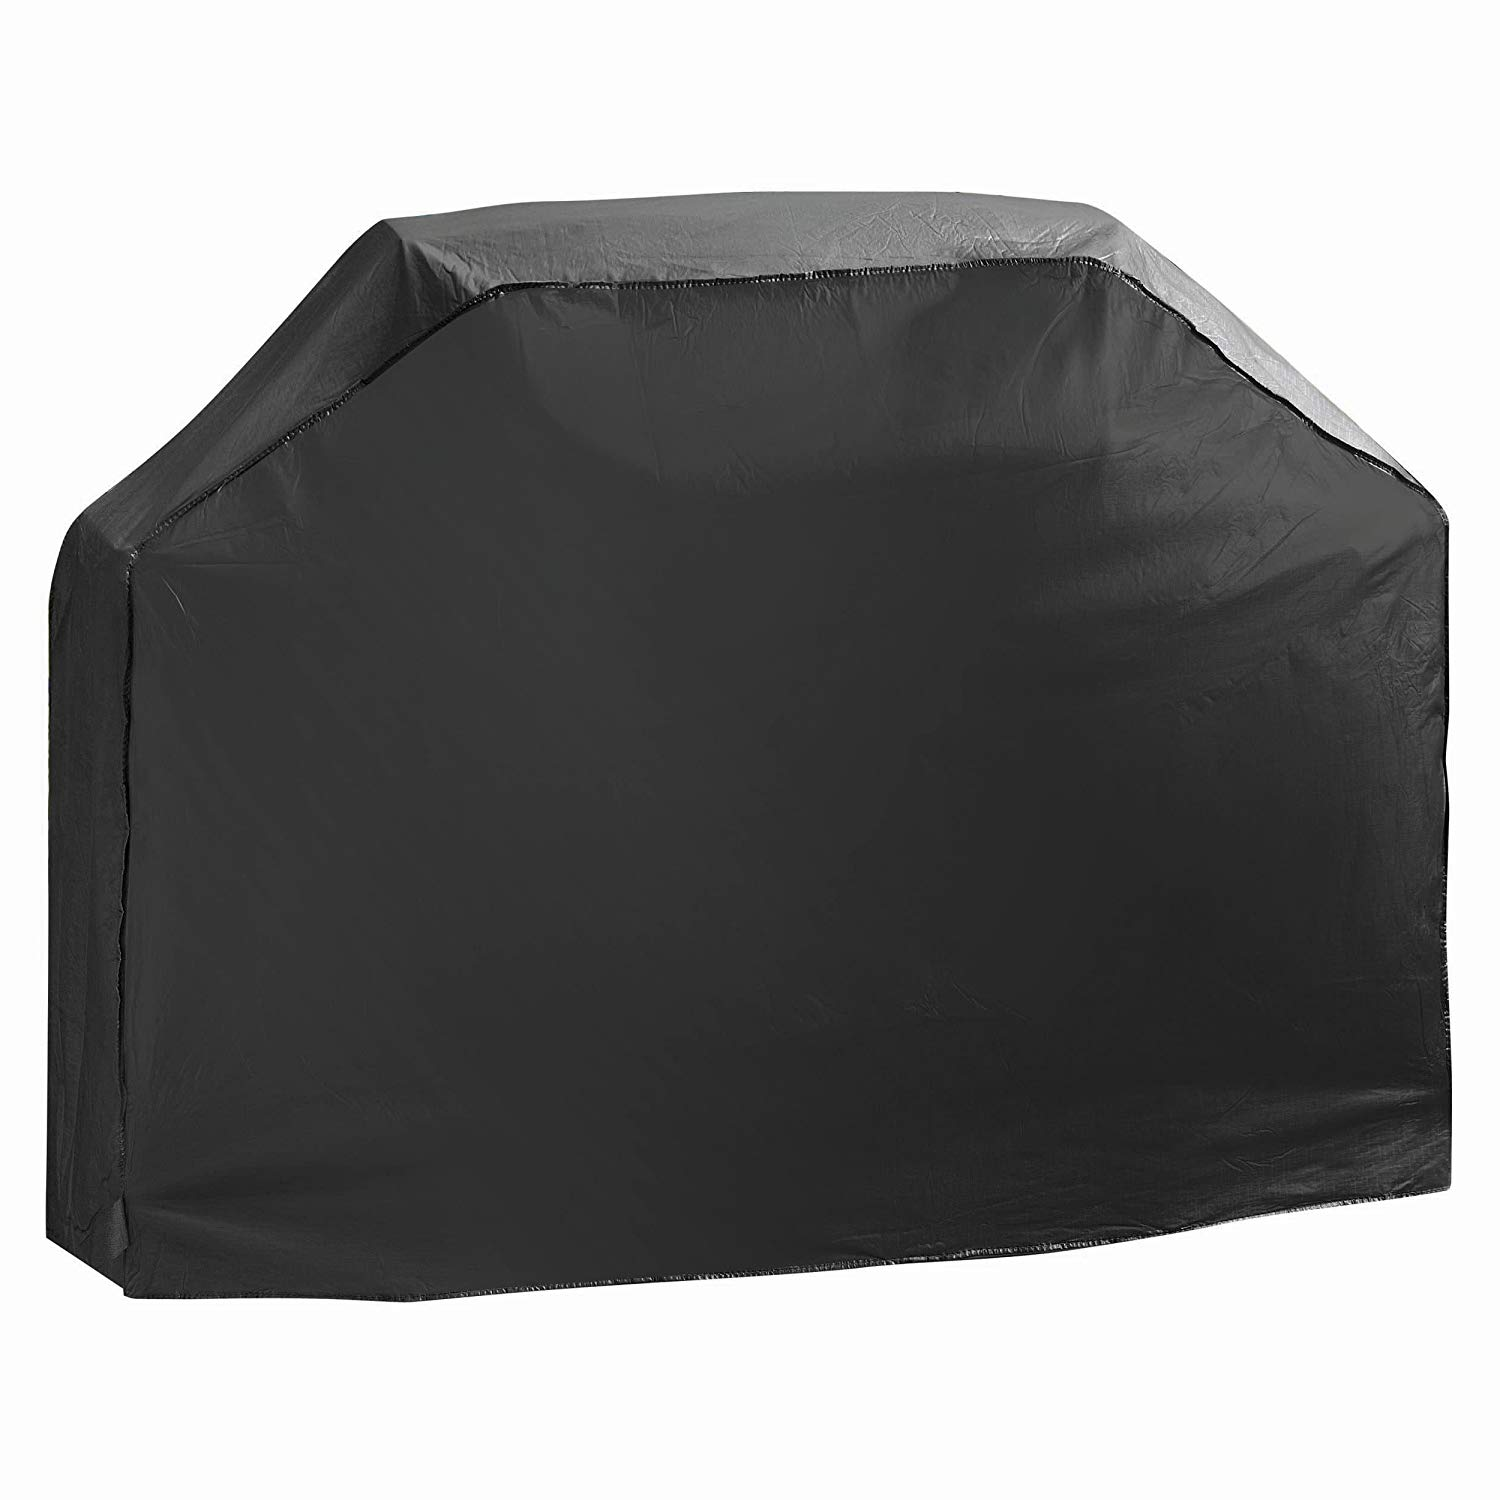 Ln 1 Piece Black Outdoor Camping Grill Cover Waterproof 42 Inch, Water Repellent BBQ Cover Medium Durable Patio Barbecue Cover Heavy Duty Material Closure at Bottom Grill Secure, Vinyl Flannel